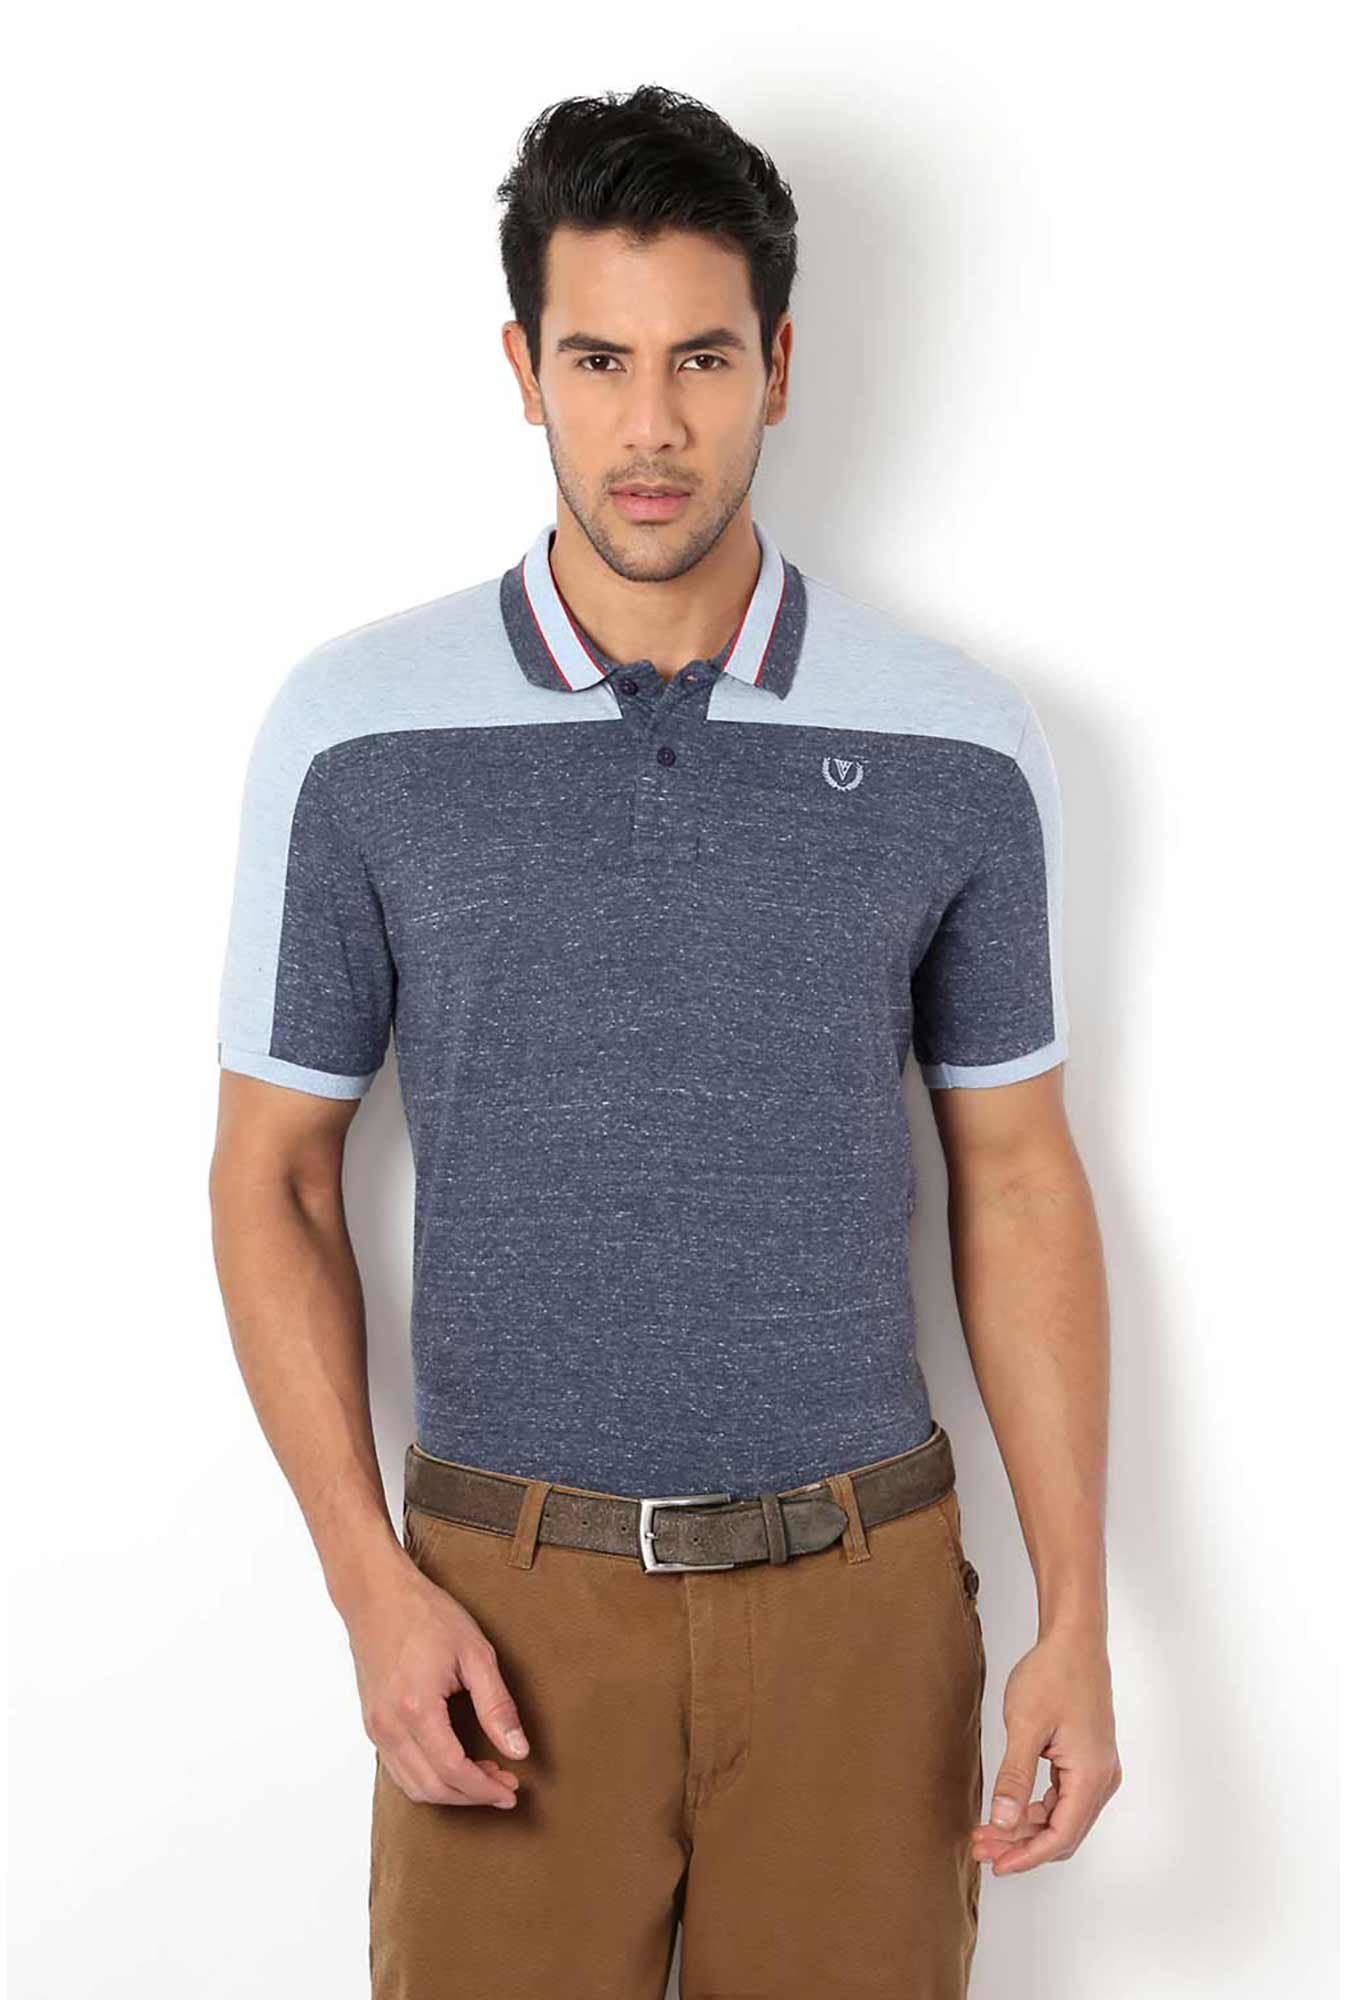 Van Heusen Navy Textured Polo T-Shirt